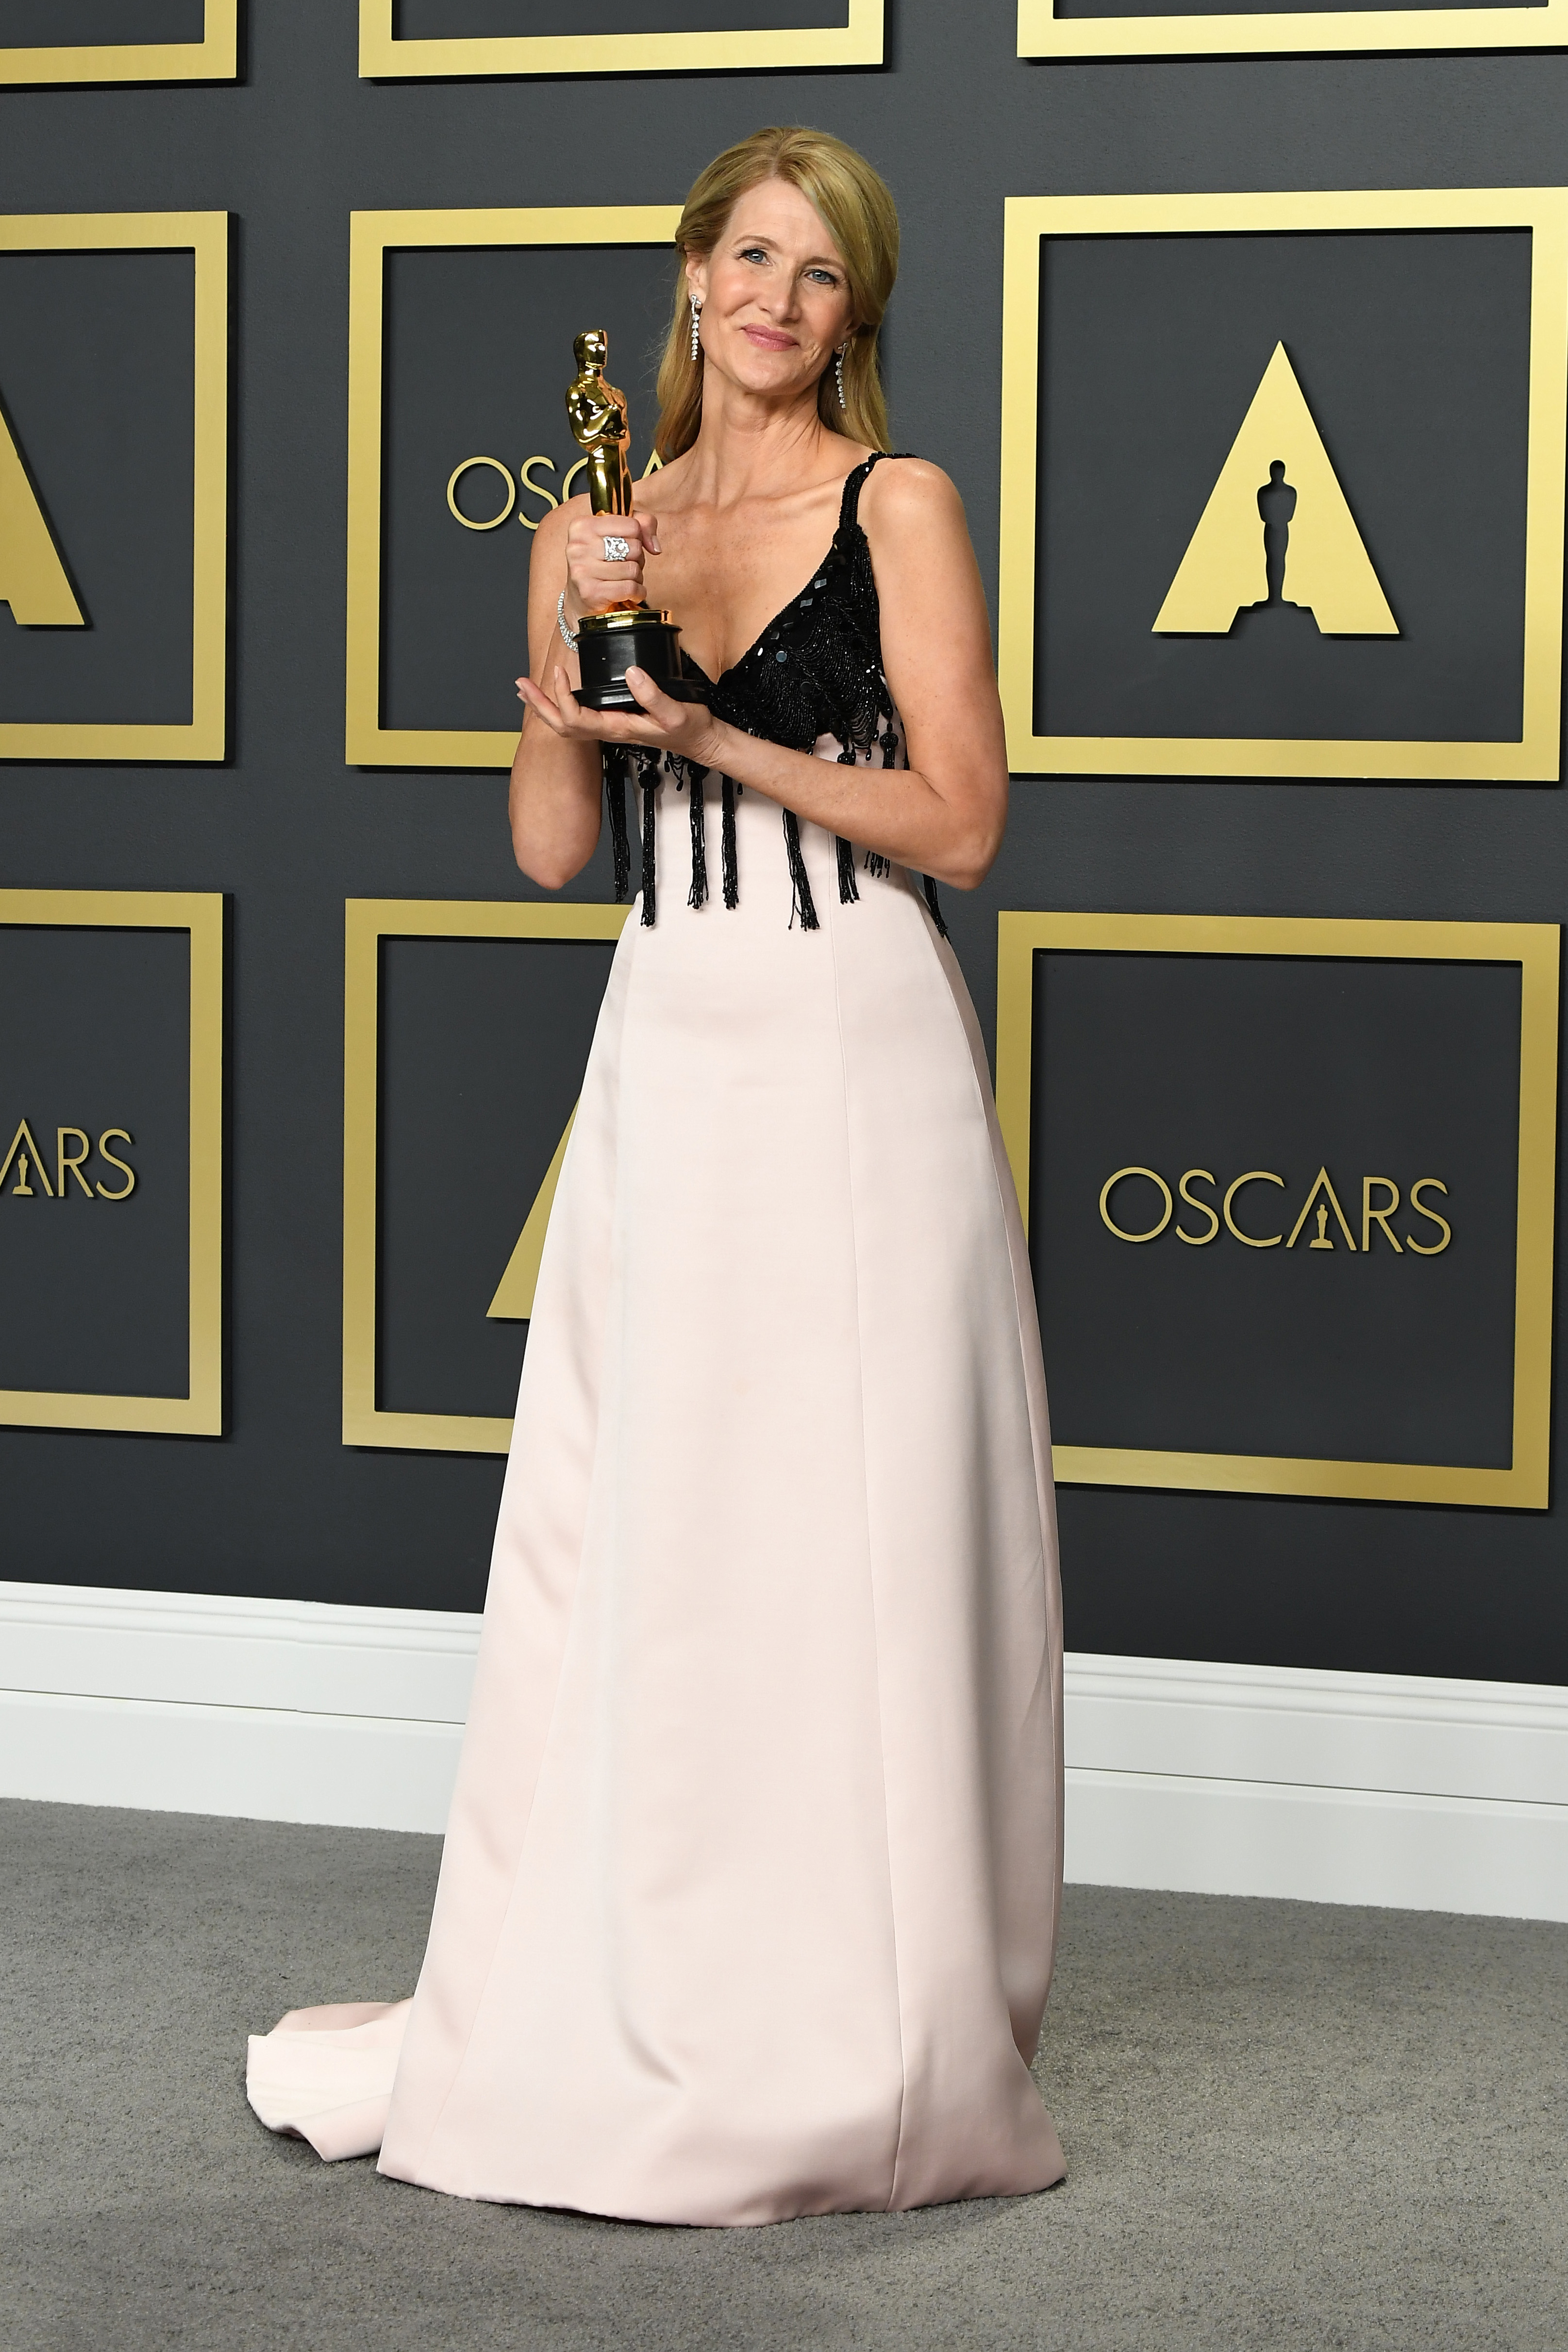 Laura Dern at an event for The Oscars (2020)